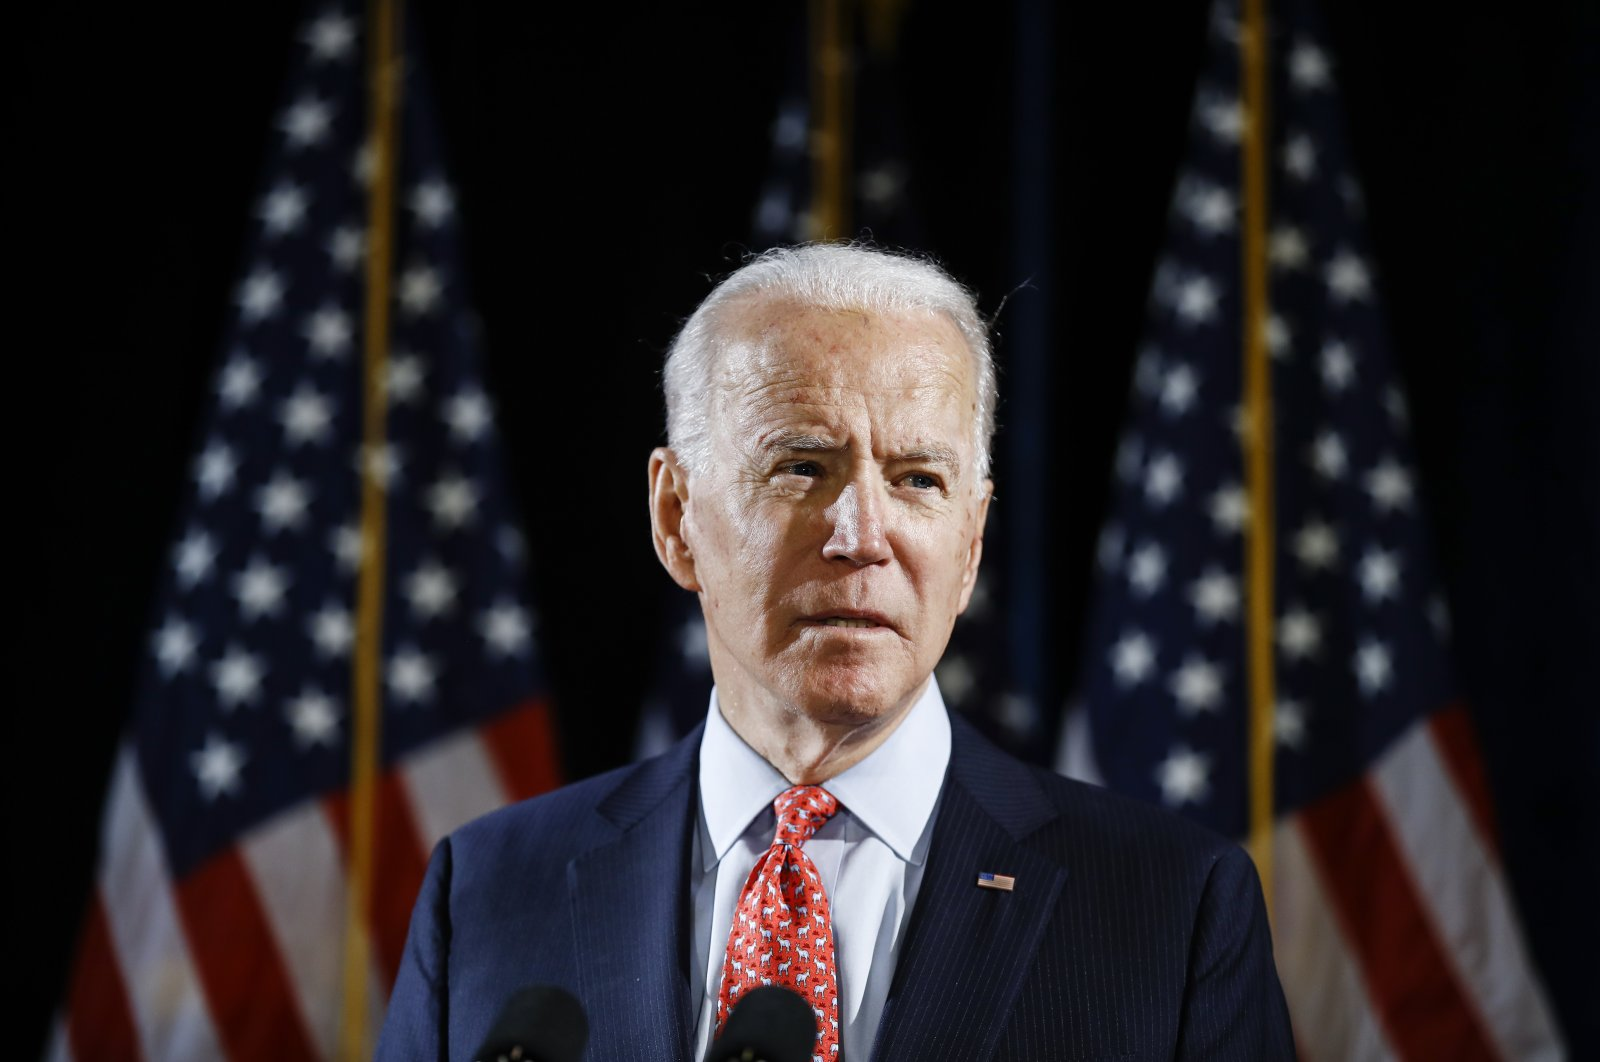 Democratic presidential candidate and former Vice President Joe Biden speaks about the coronavirus in Wilmington, Delaware, U.S., March 12, 2020. (AP Photo)